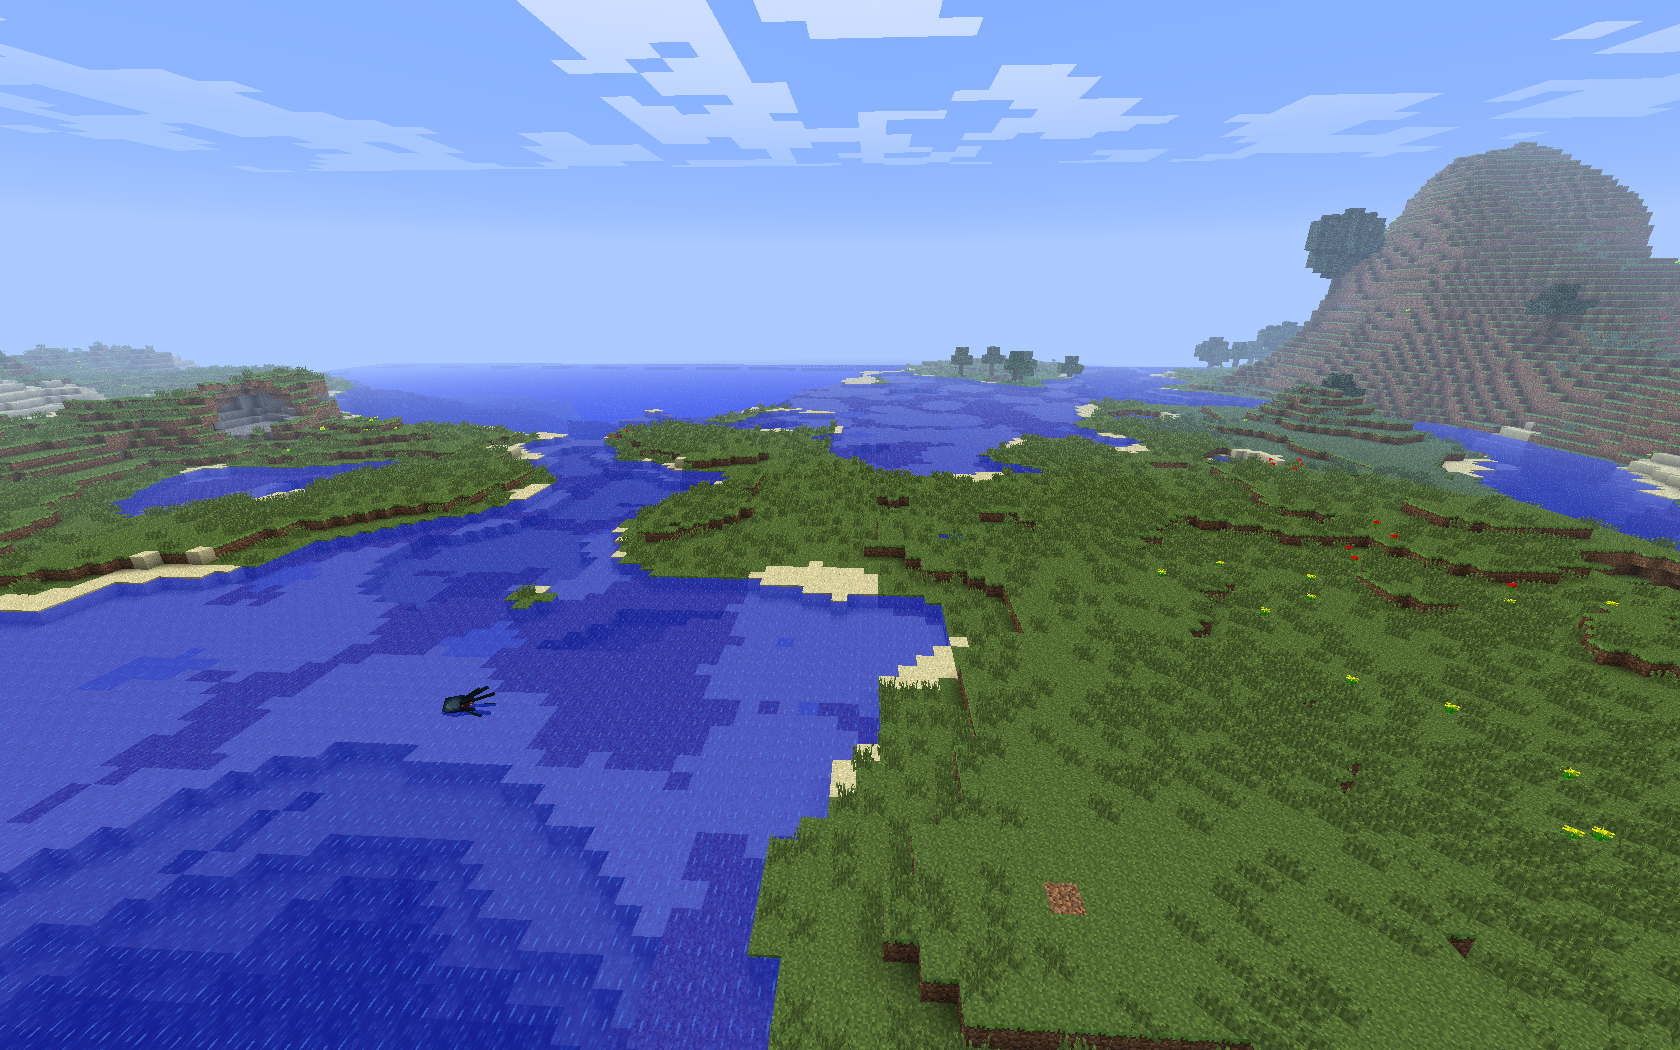 Water | Minecraft Wiki | Fandom powered by Wikia